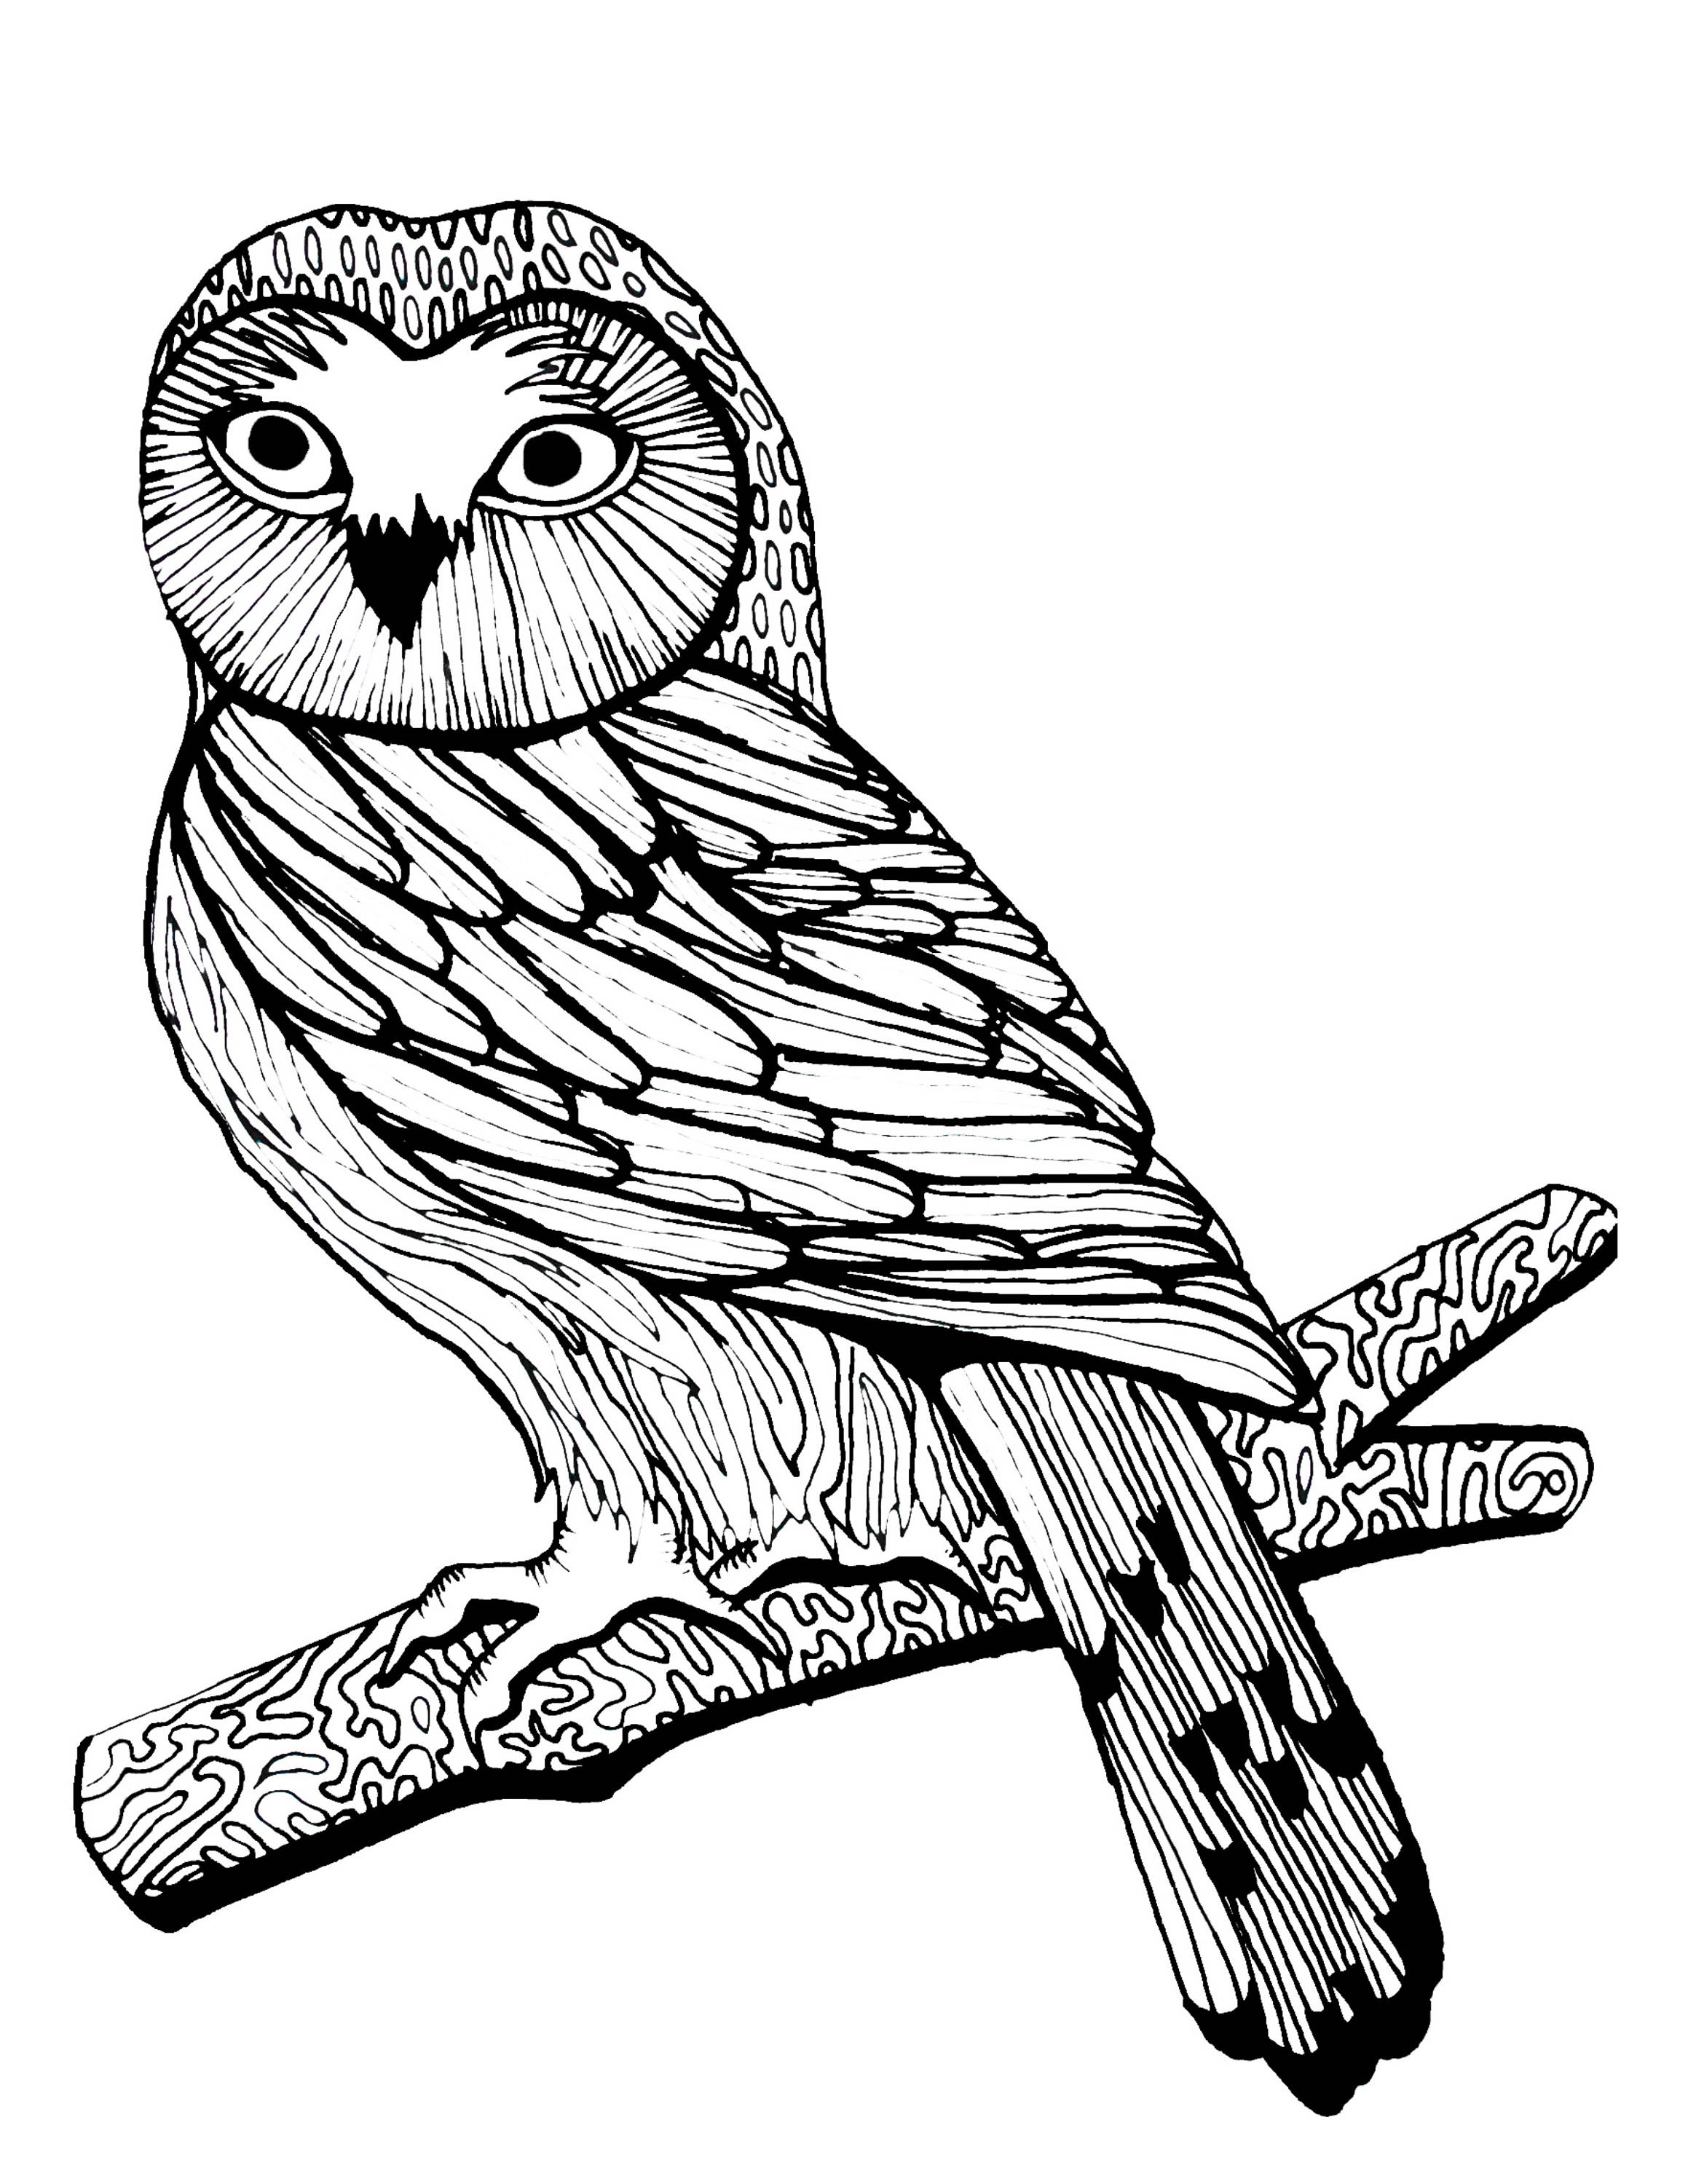 birds of prey coloring pages hawks coloring pages free coloring pages birds of prey birds coloring pages prey of